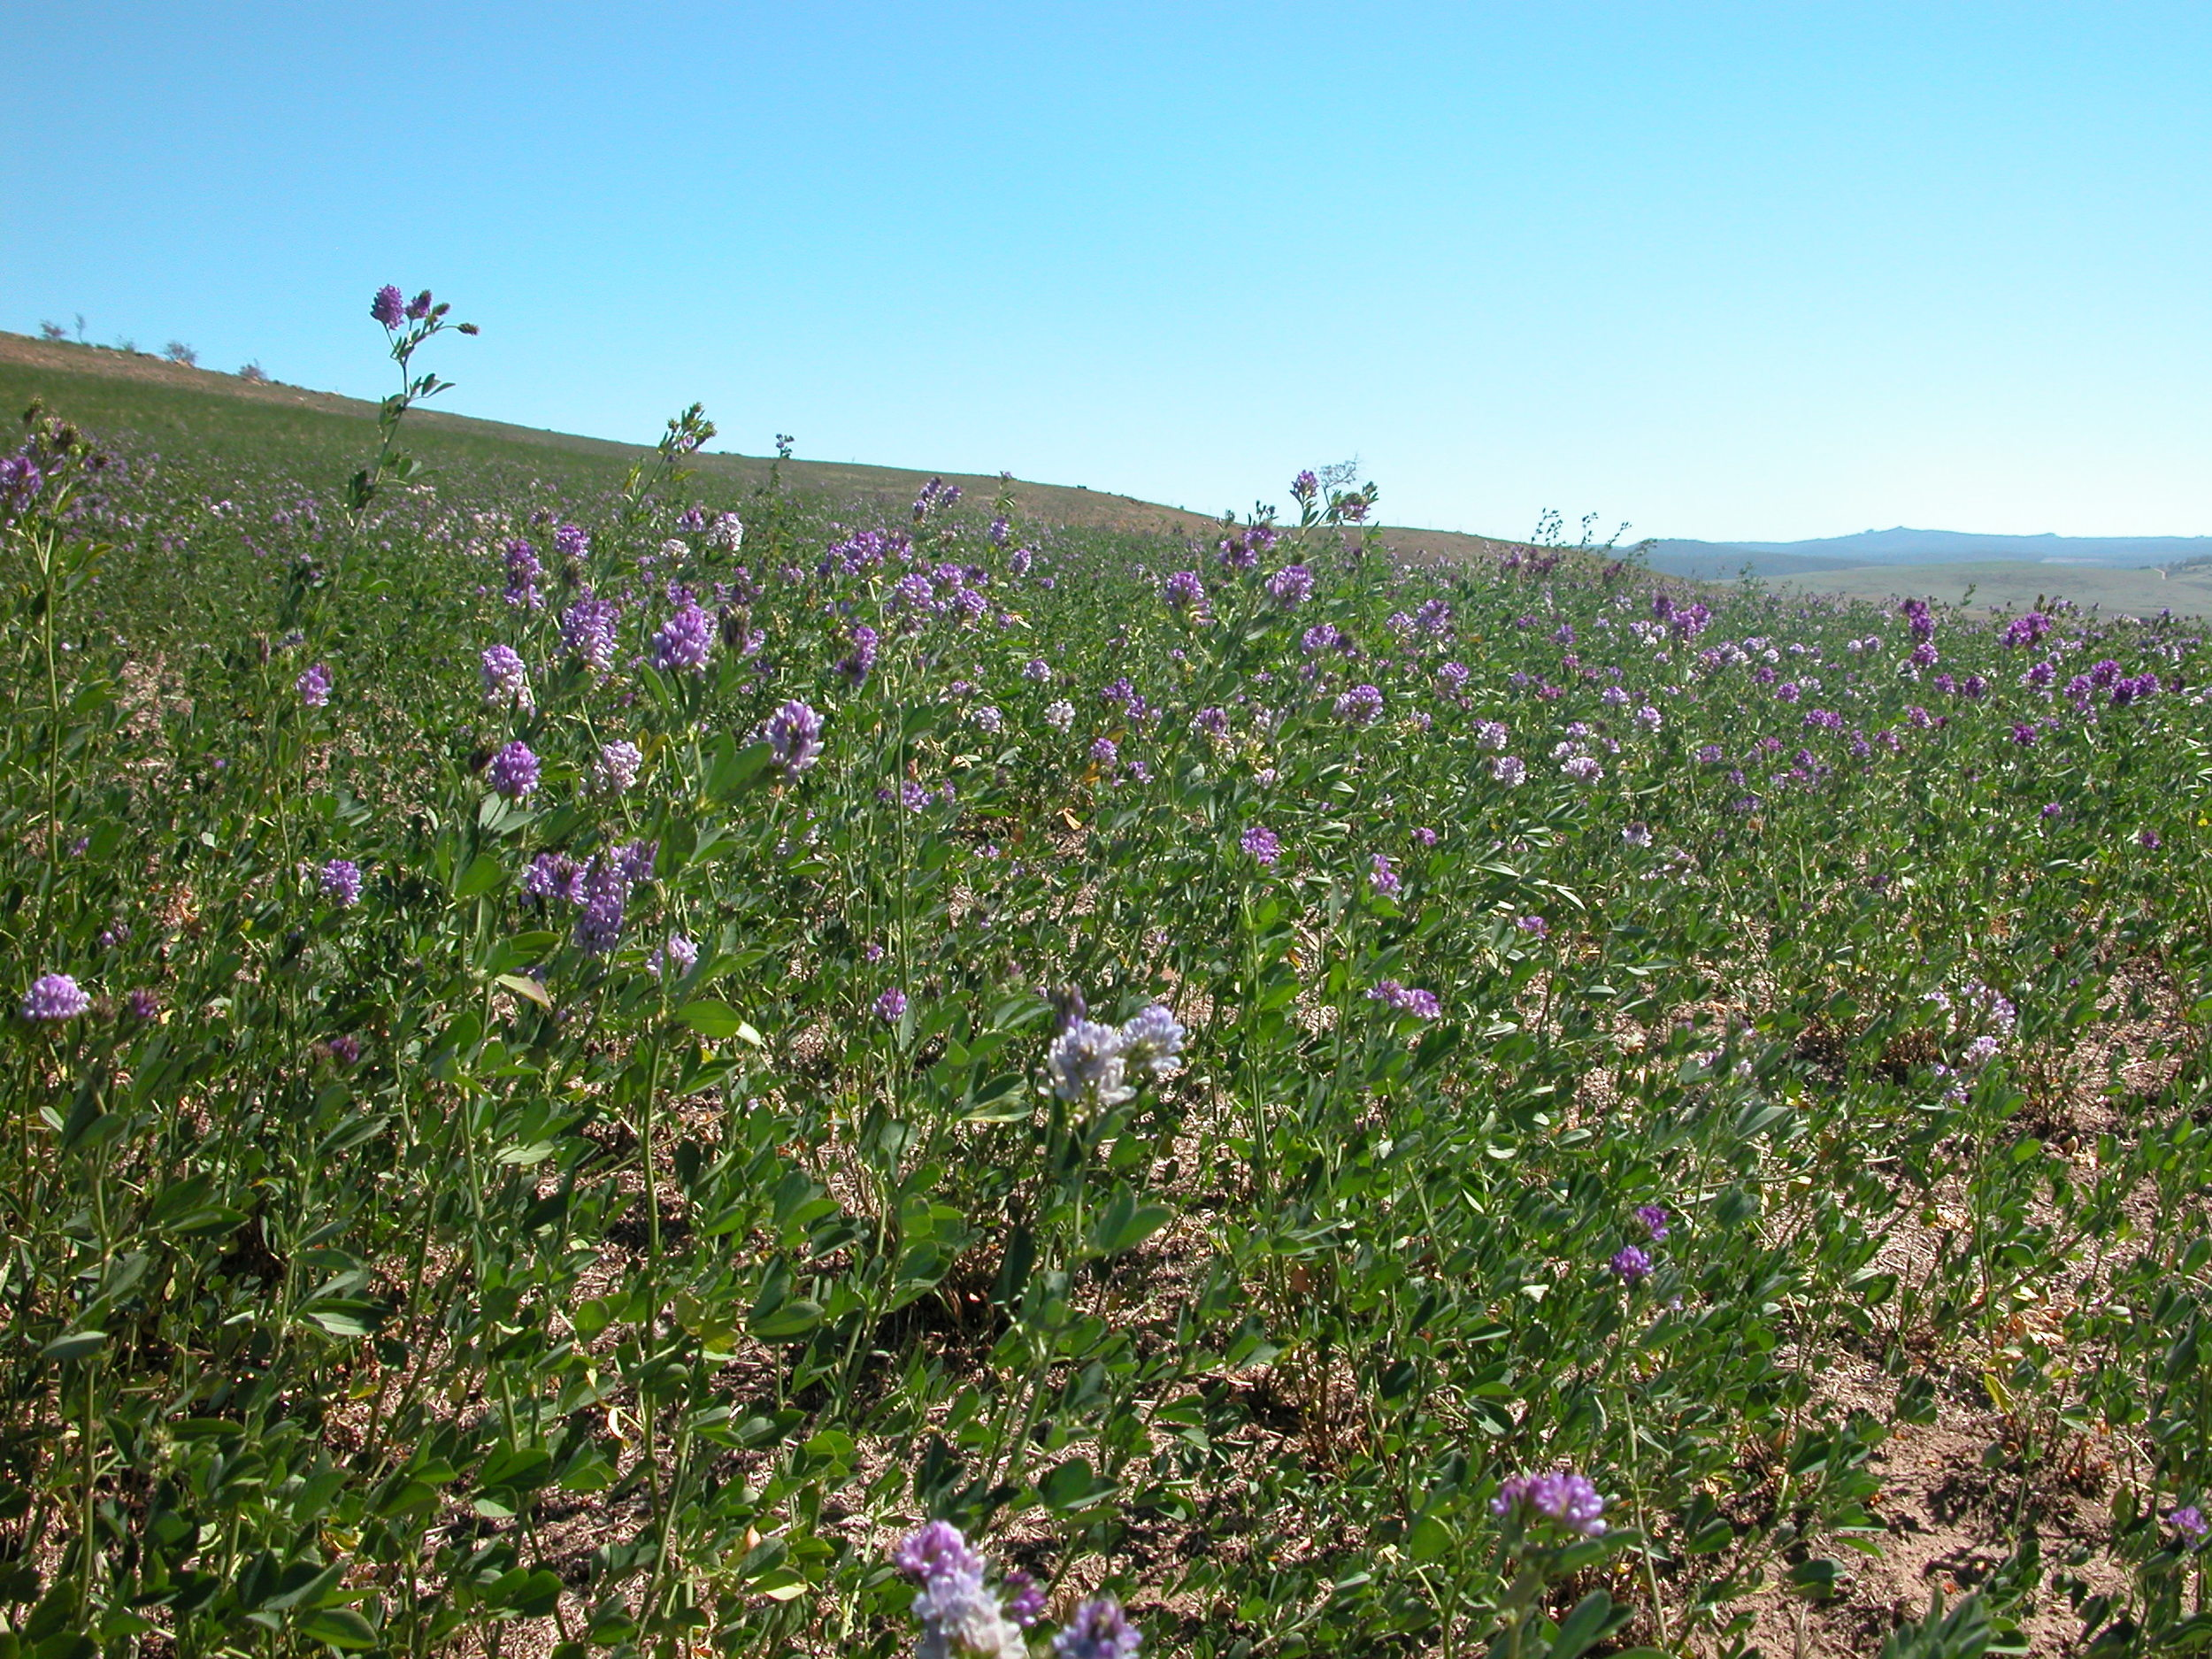 The lucerne (alfalfa) growing like Jack's beanstalk in the burn area.